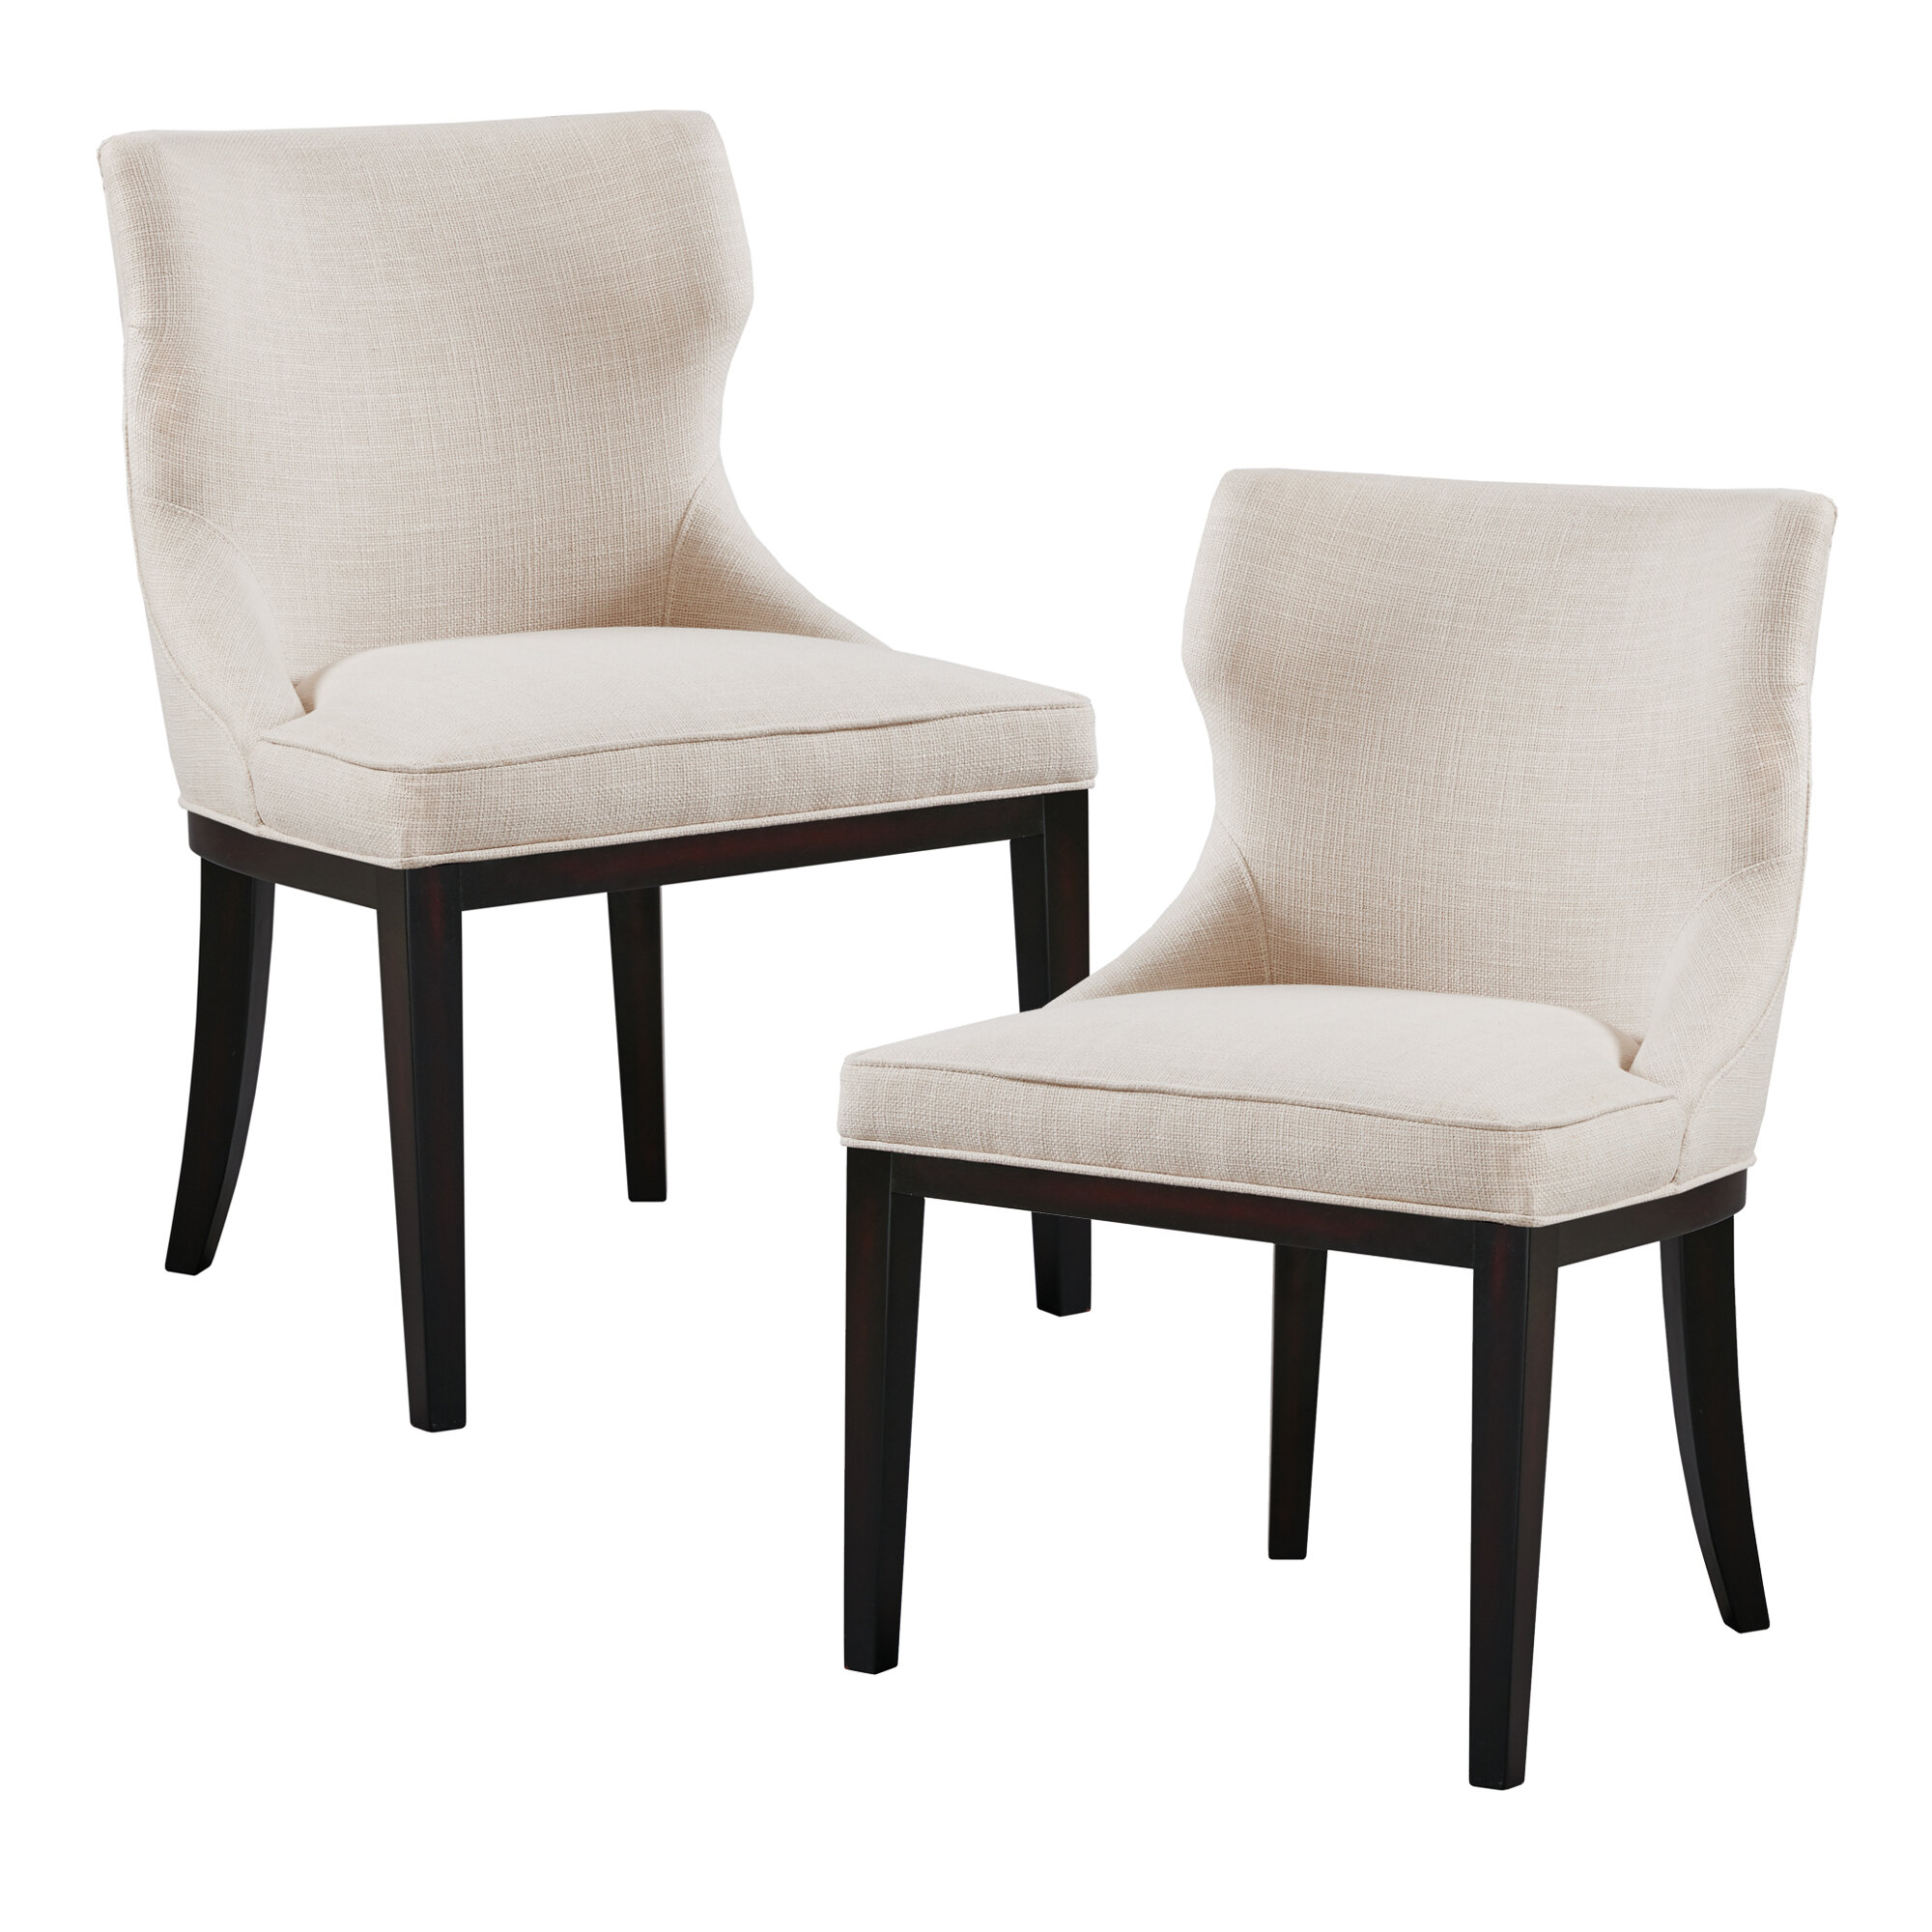 Madison Park Signature Hutton Upholstered Dining